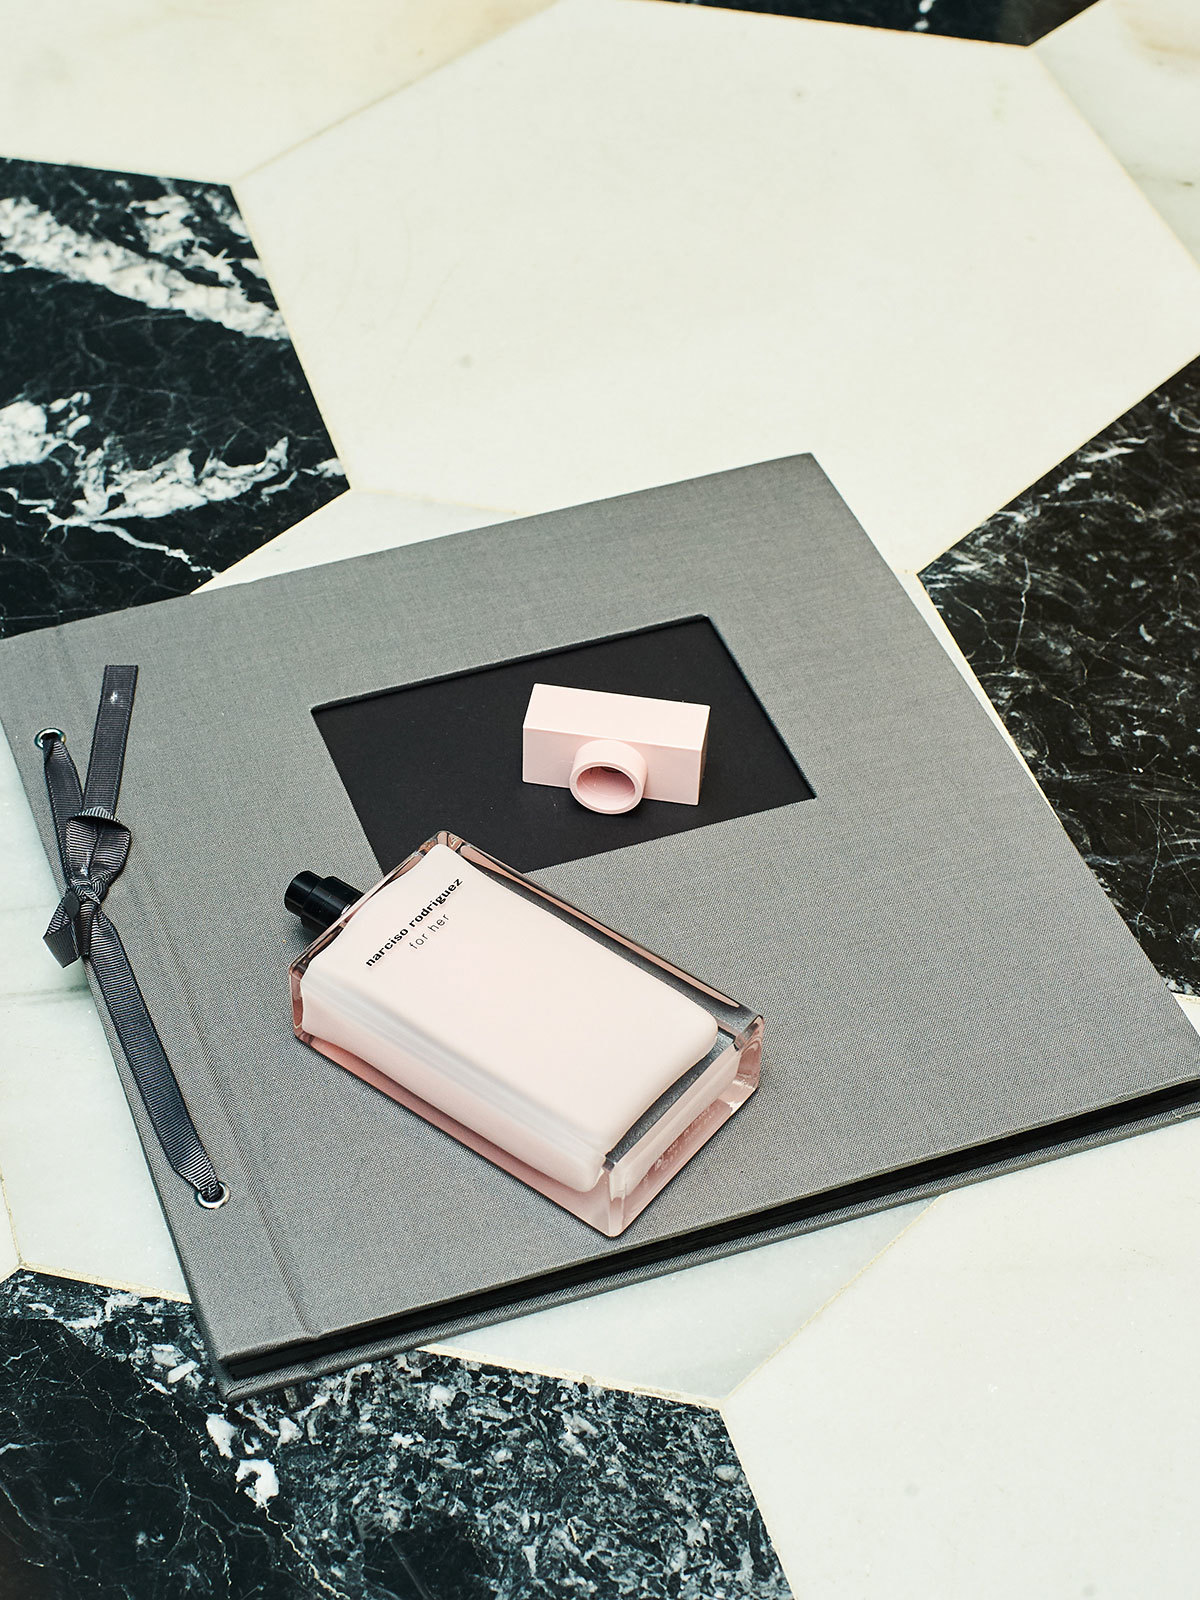 for her, de Narciso Rodriguez